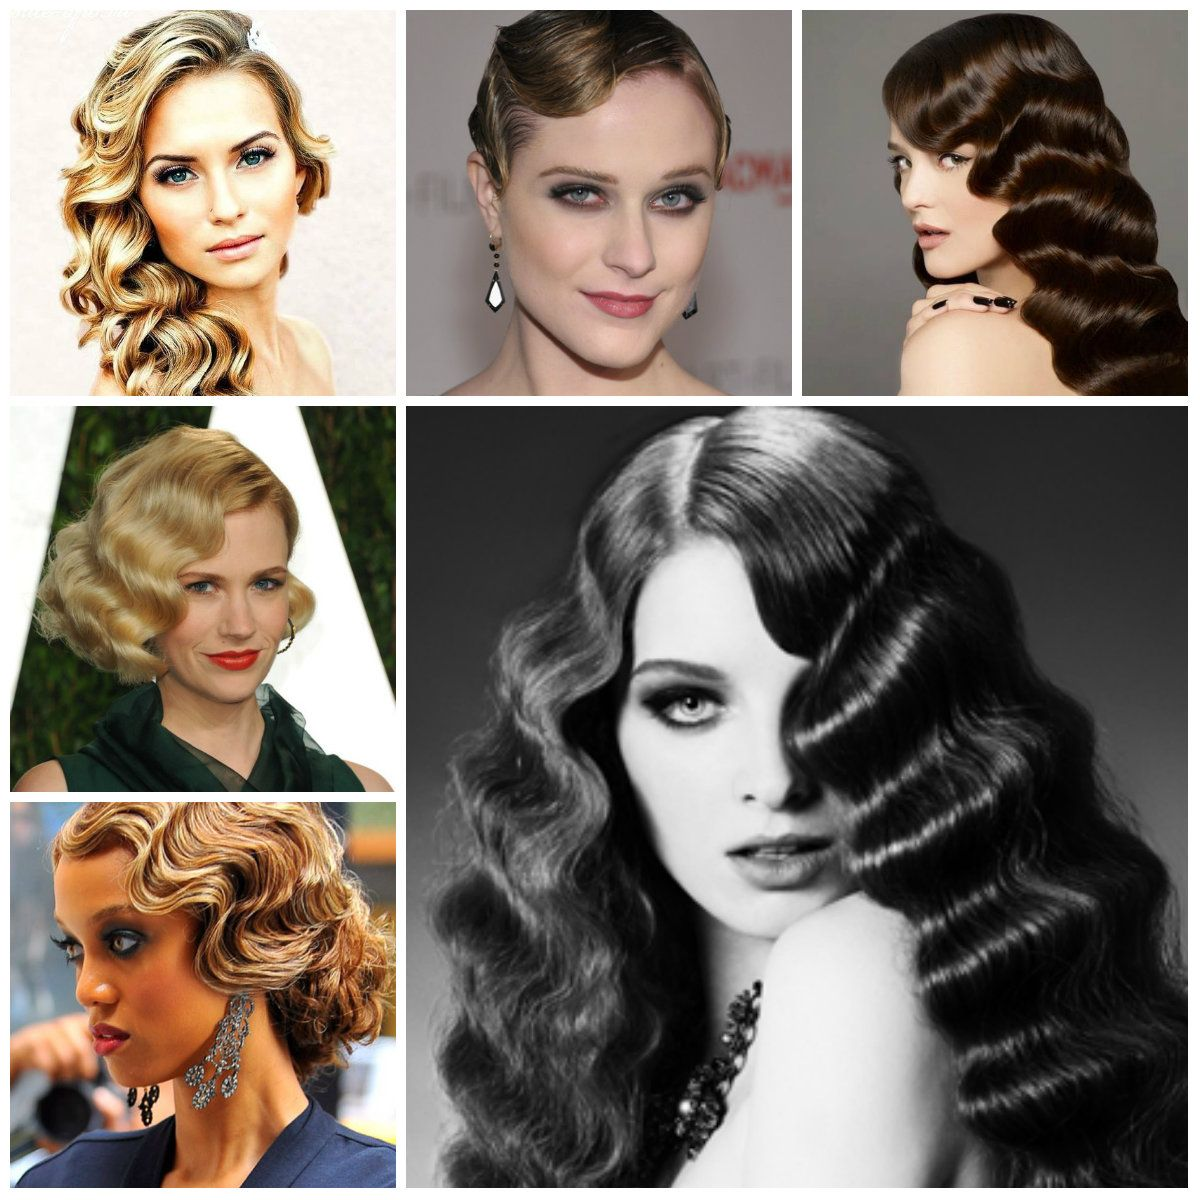 vintage finger wave hairstyles to try in 2016 | wedding